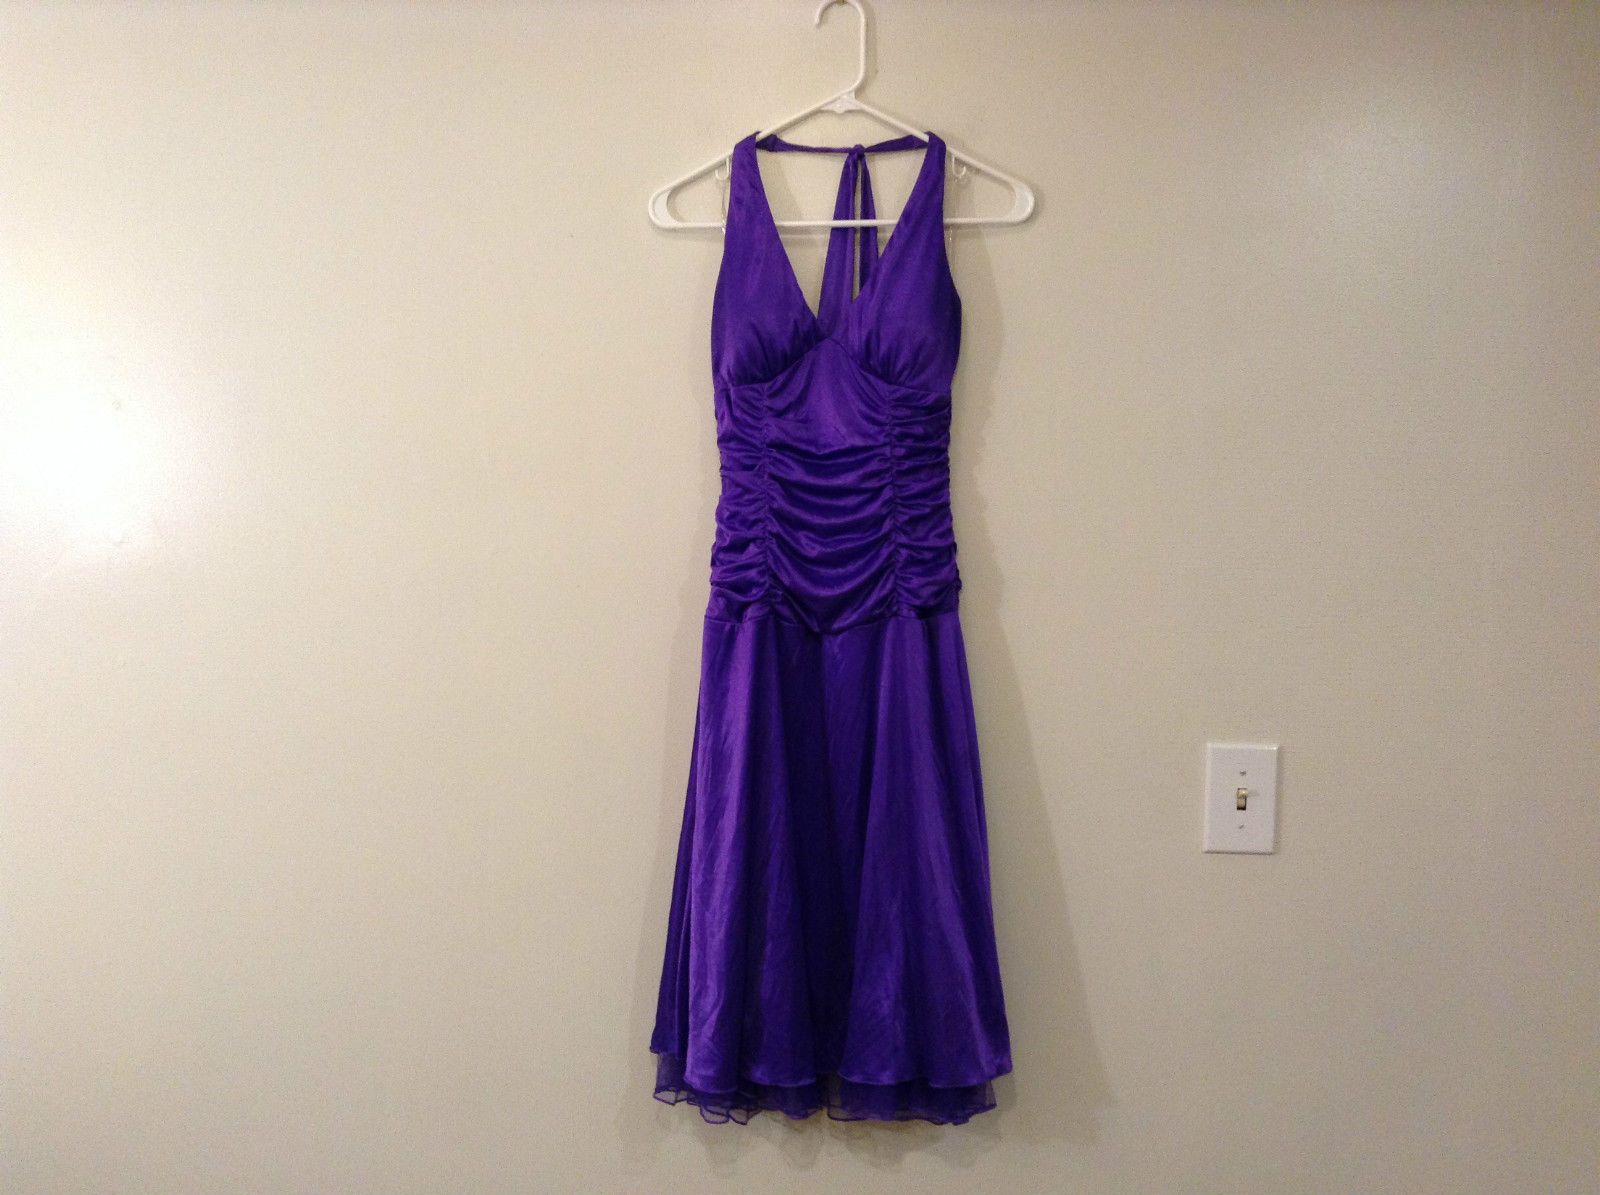 Ruby Rox Bright Violet Party Dress Halter Top Pleated Body Size Medium